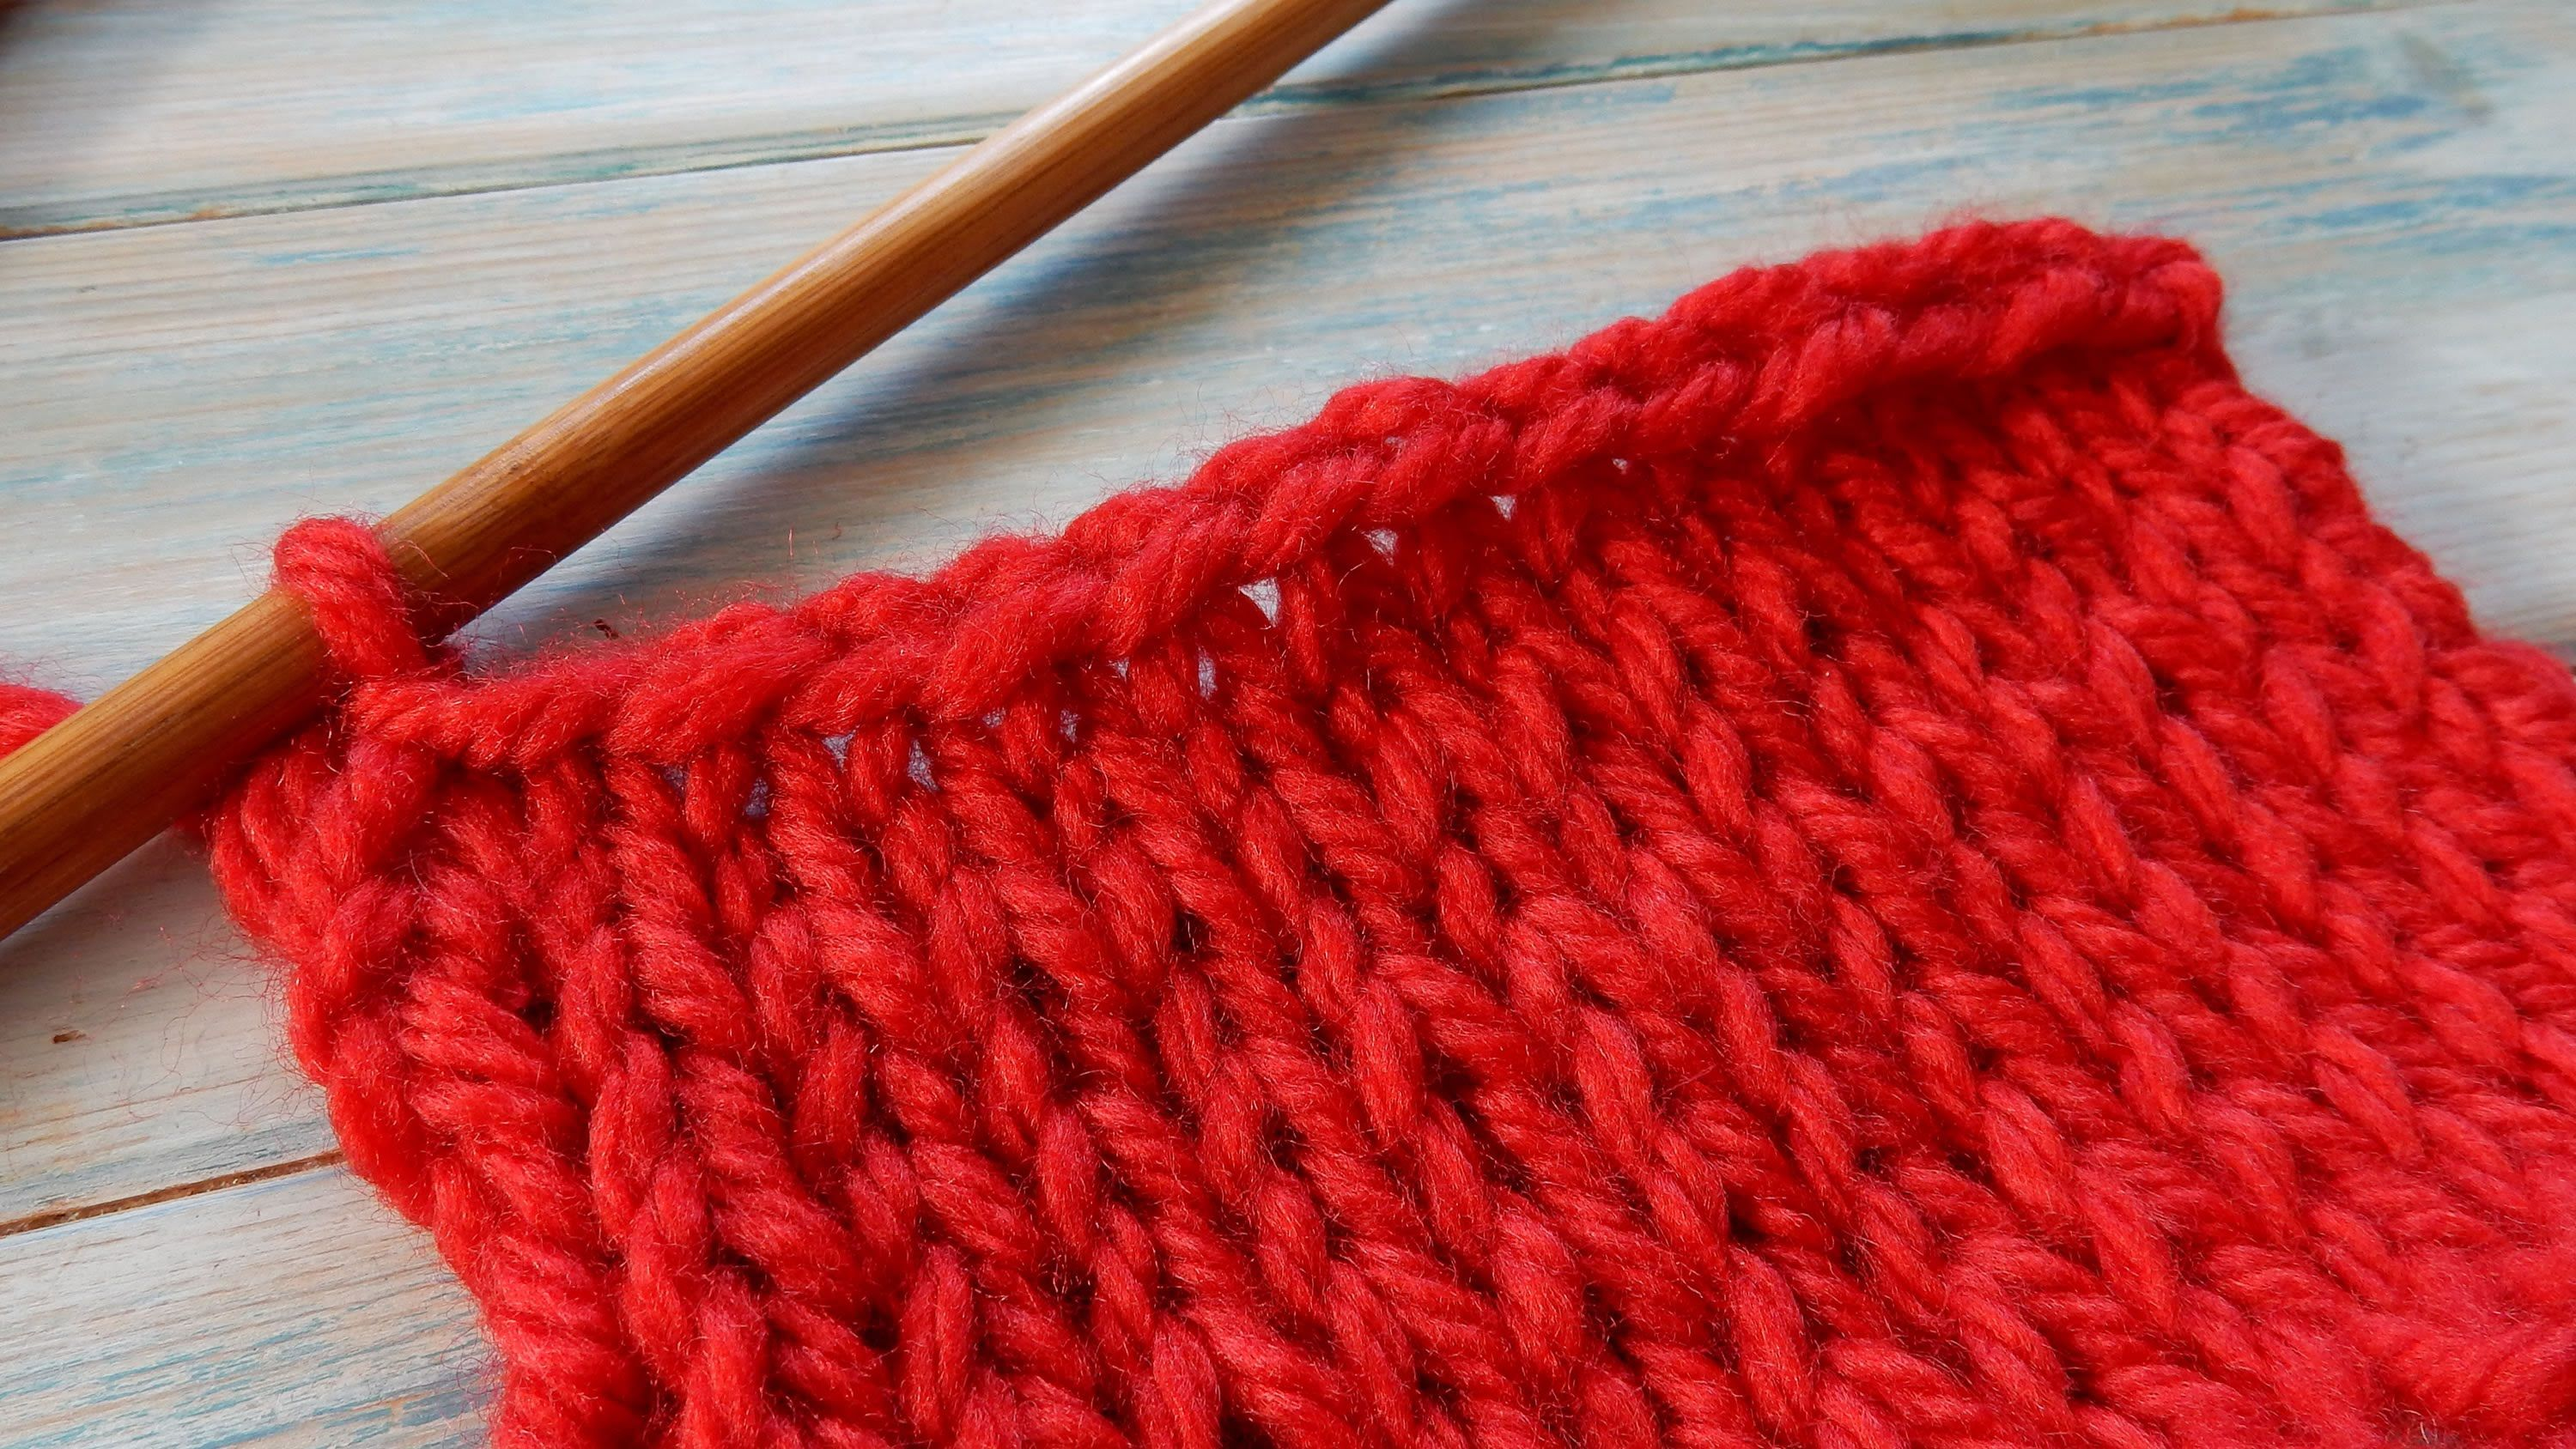 How To Cast Off In Knitting Casting Off Knitting Loom Knitting Knitting Basics